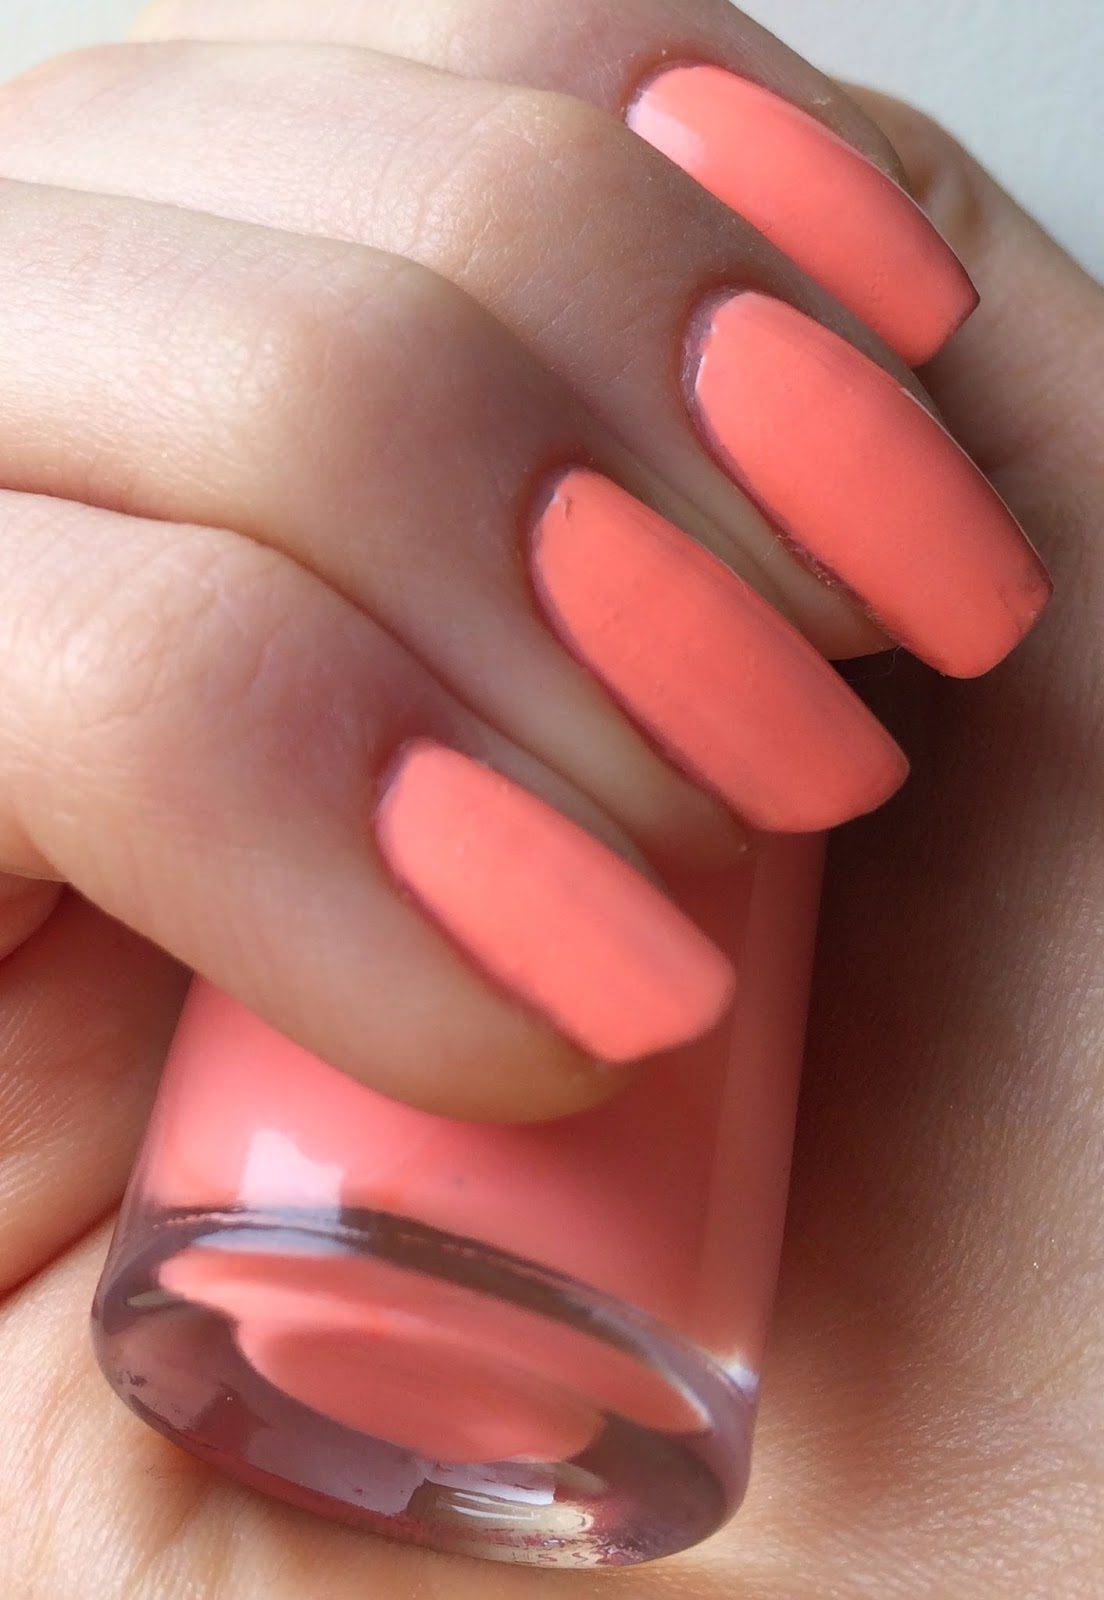 maybelline-bleached-neons-coral-heat-swatch